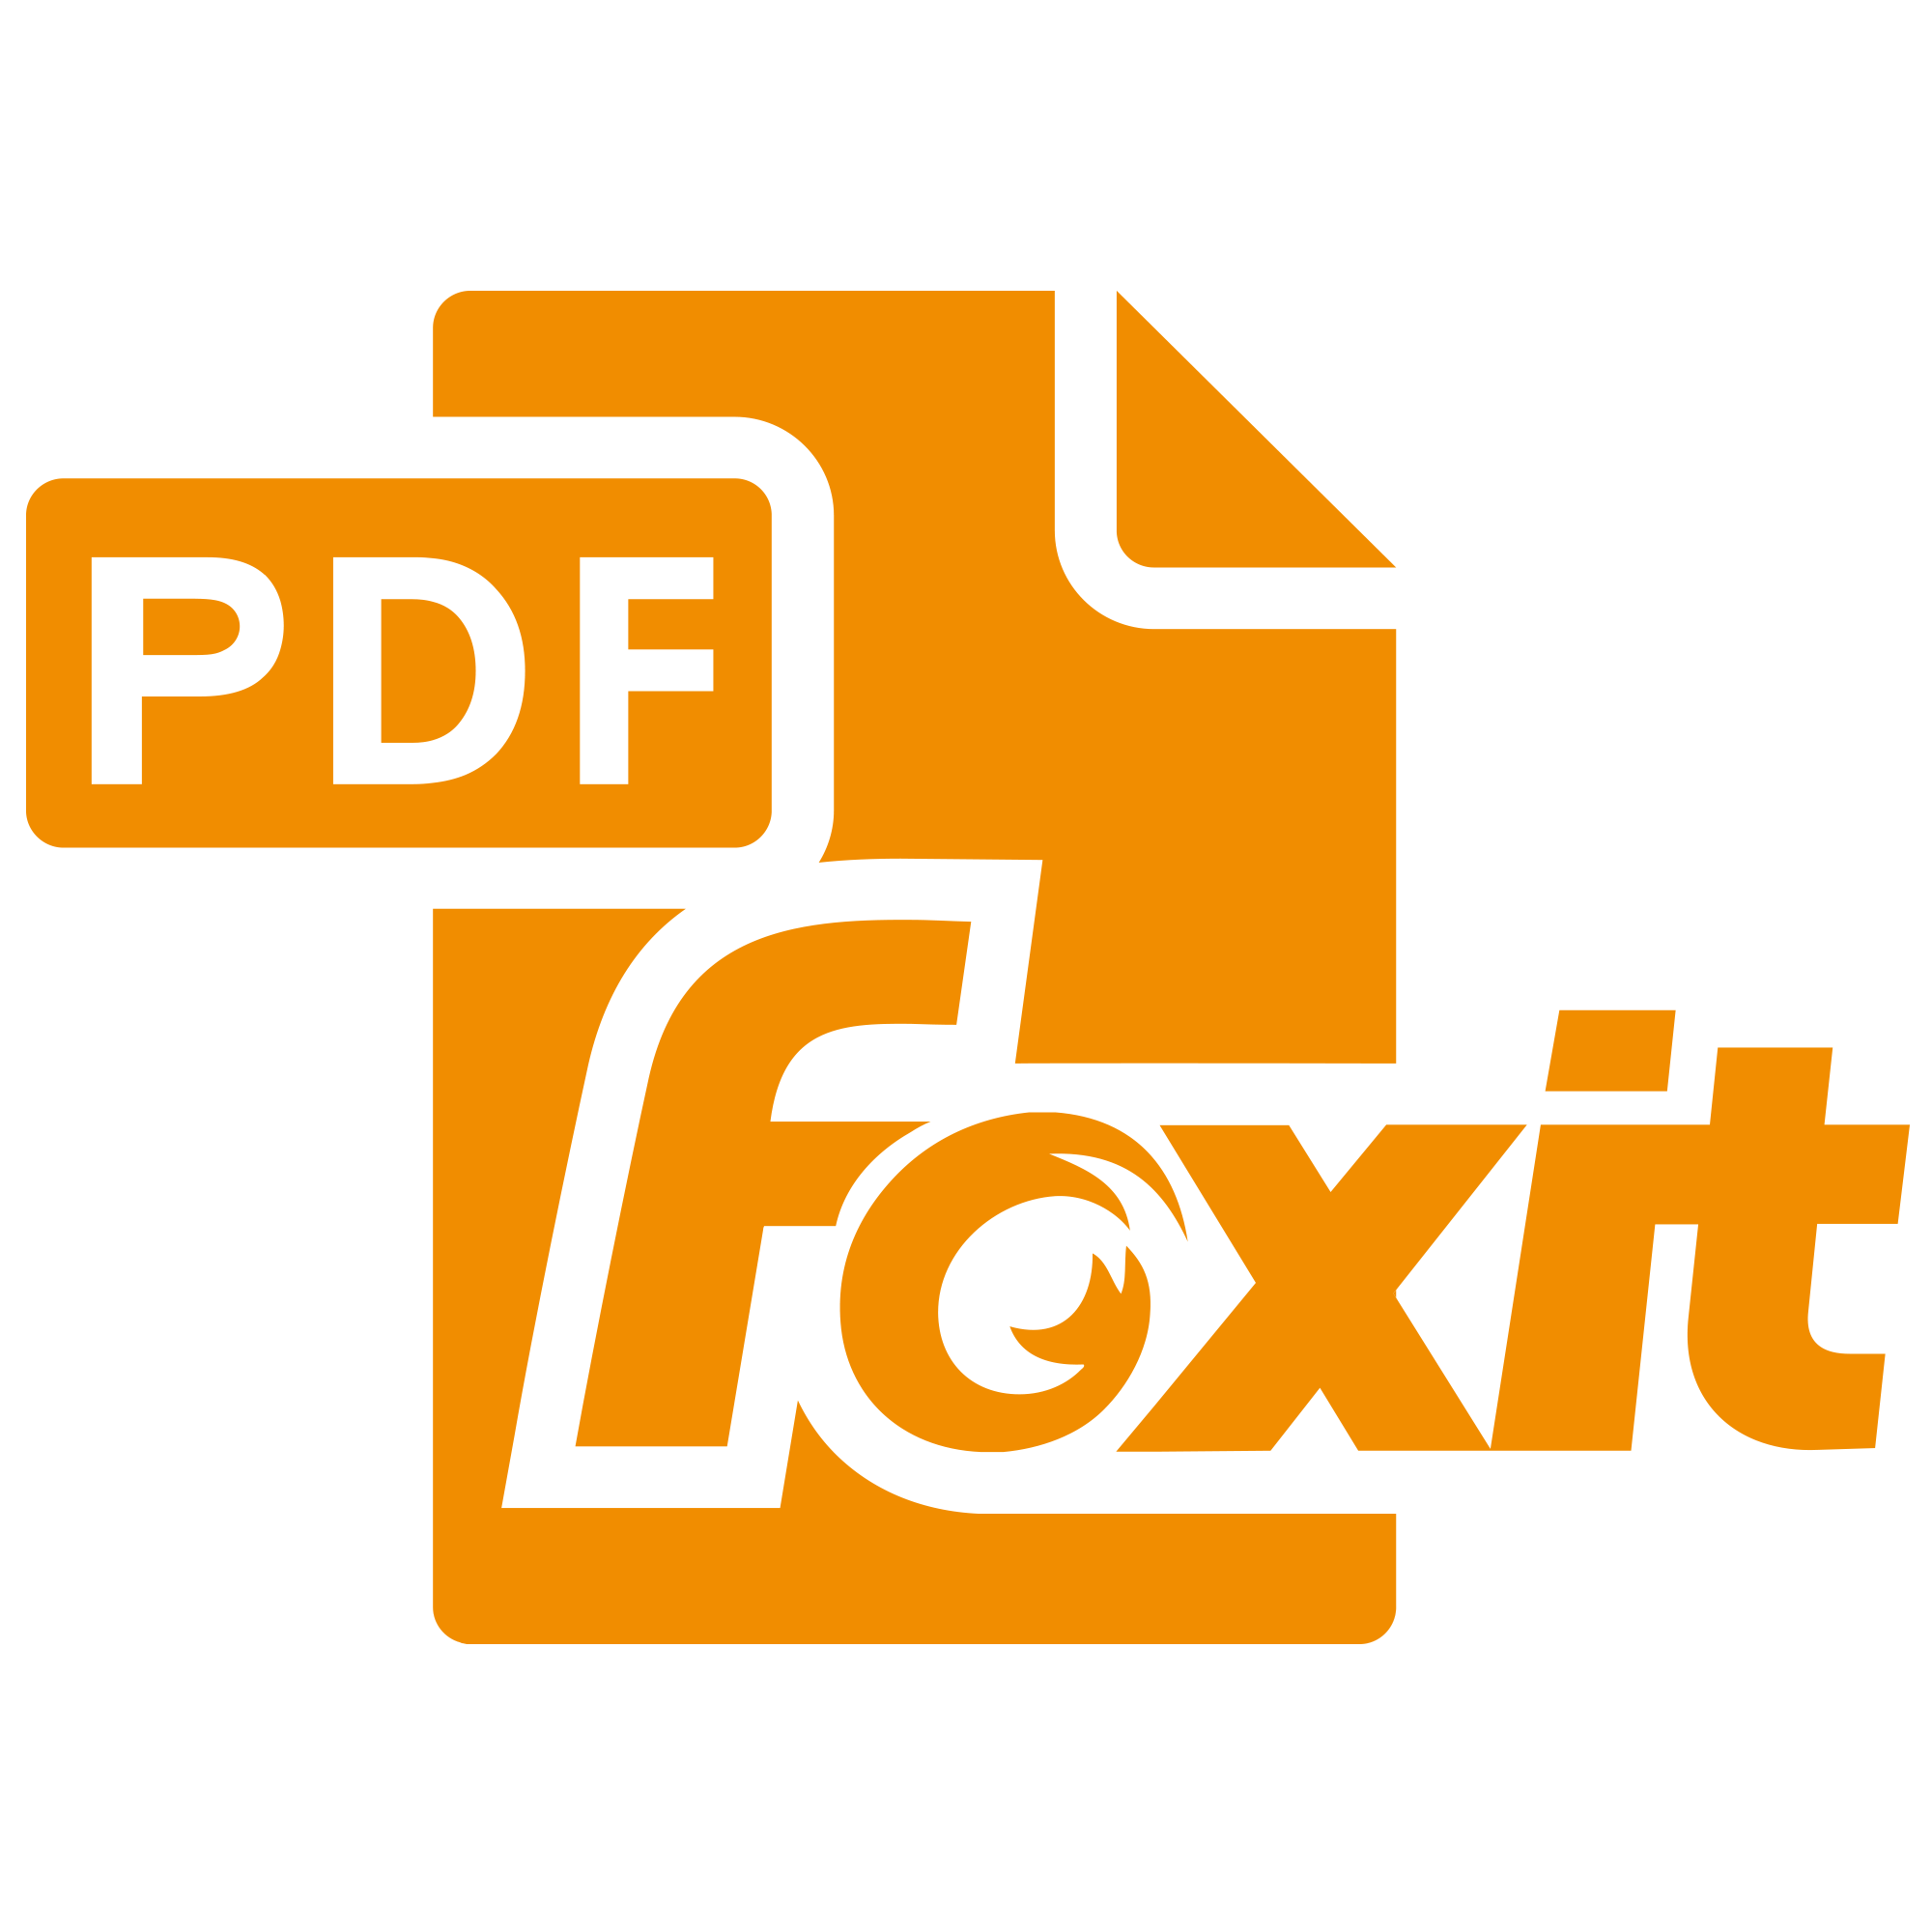 Foxit Reader 10.1.0.37527 Crack Activation Key Download 2020